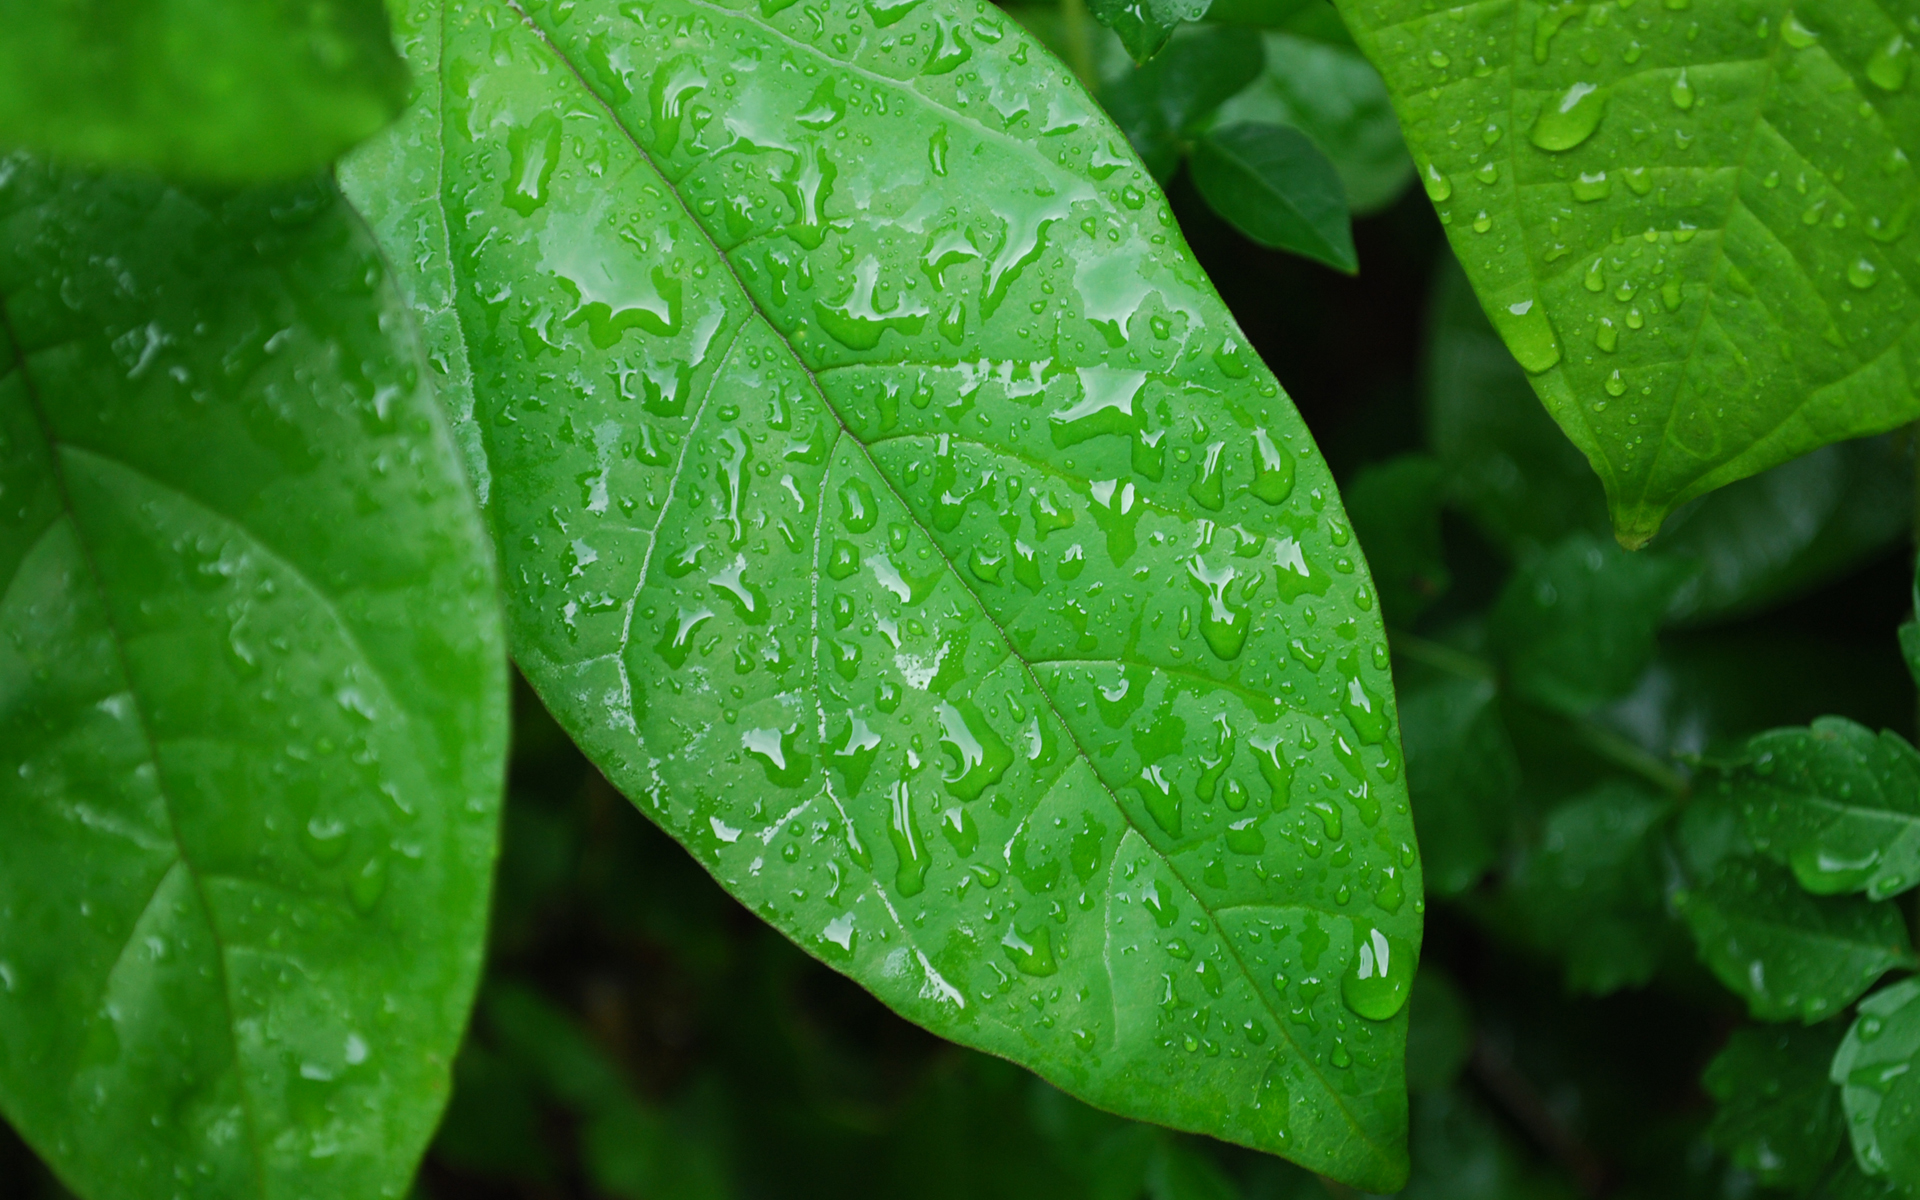 Green Nature Leaves Wet Plants Water wallpaper | 1920x1200 ...